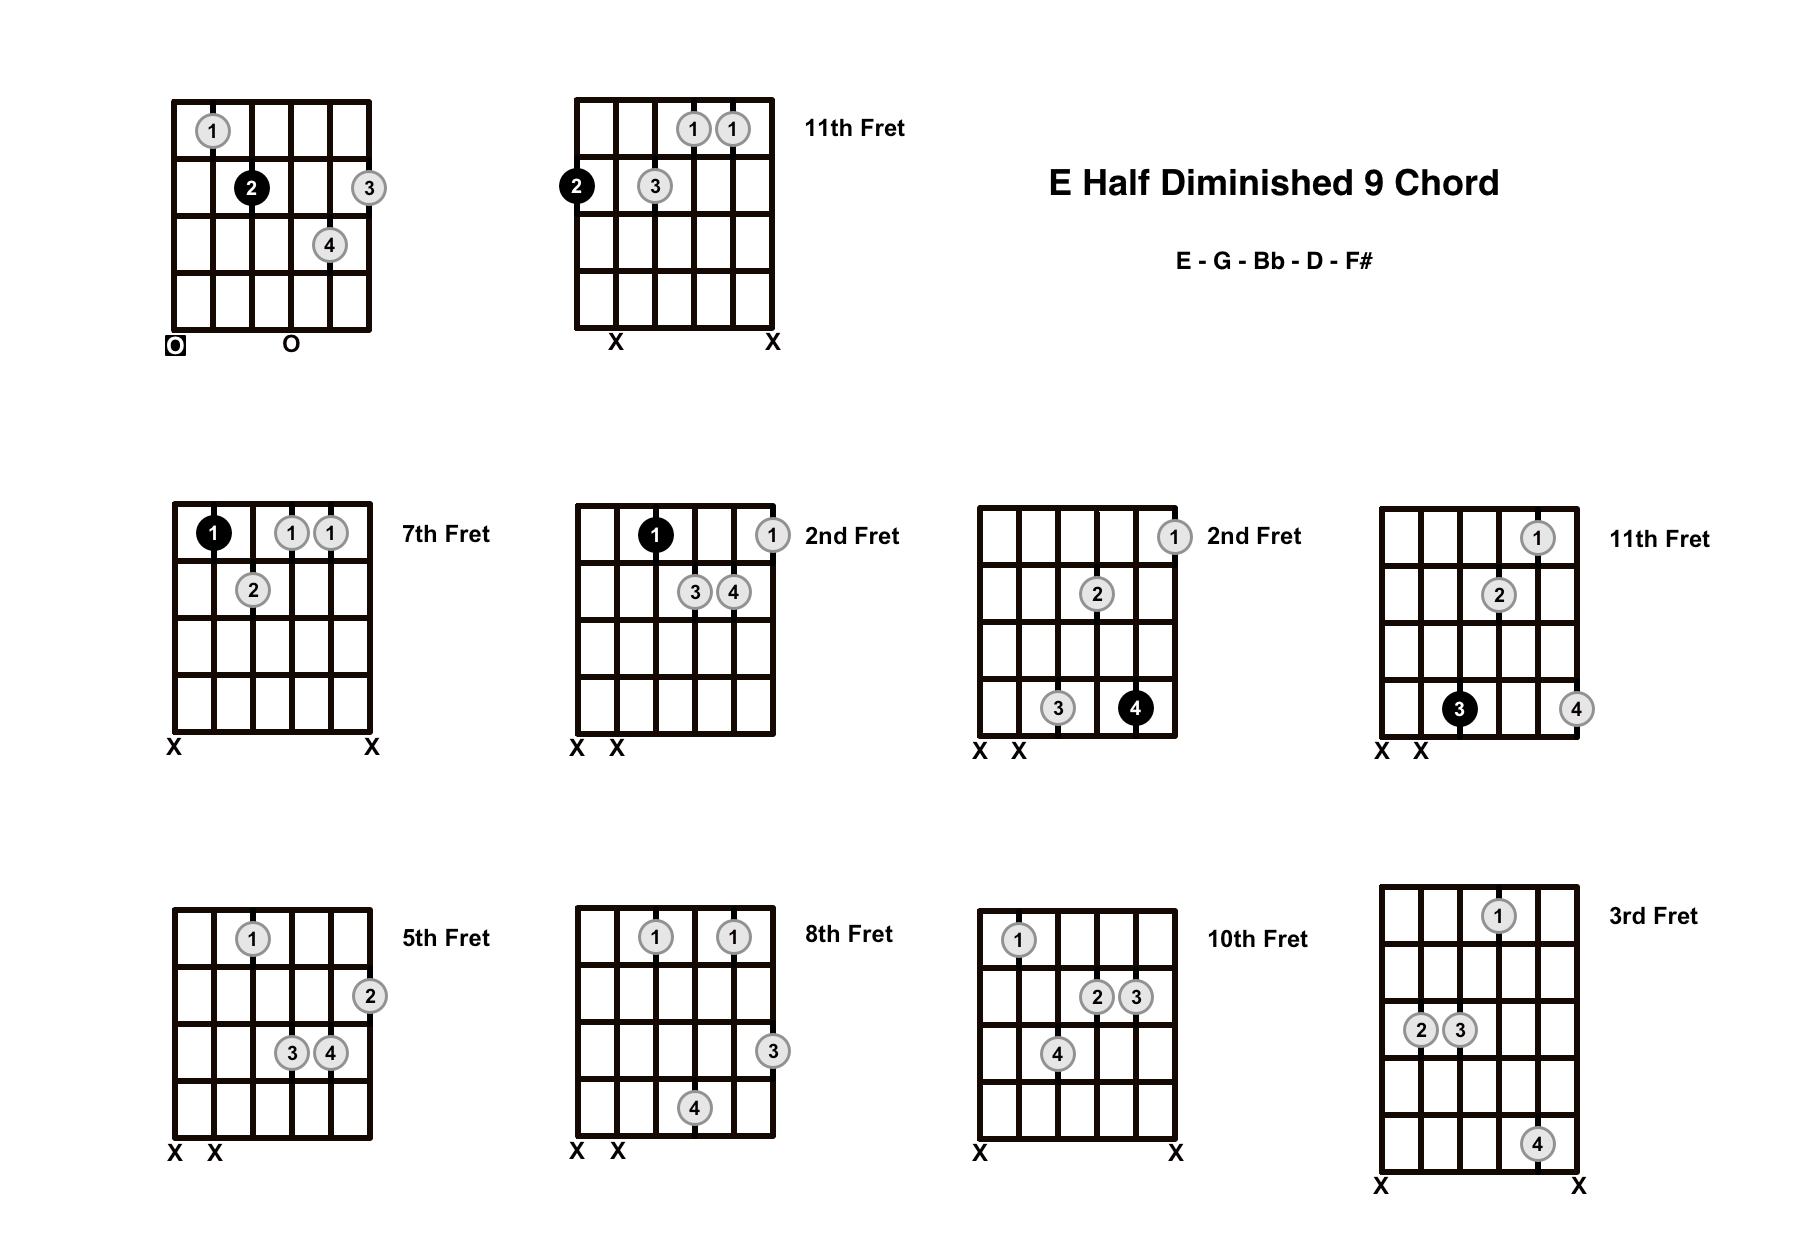 Em9b5 Chord On The Guitar (E Half Diminished 9) – Diagrams, Finger Positions and Theory